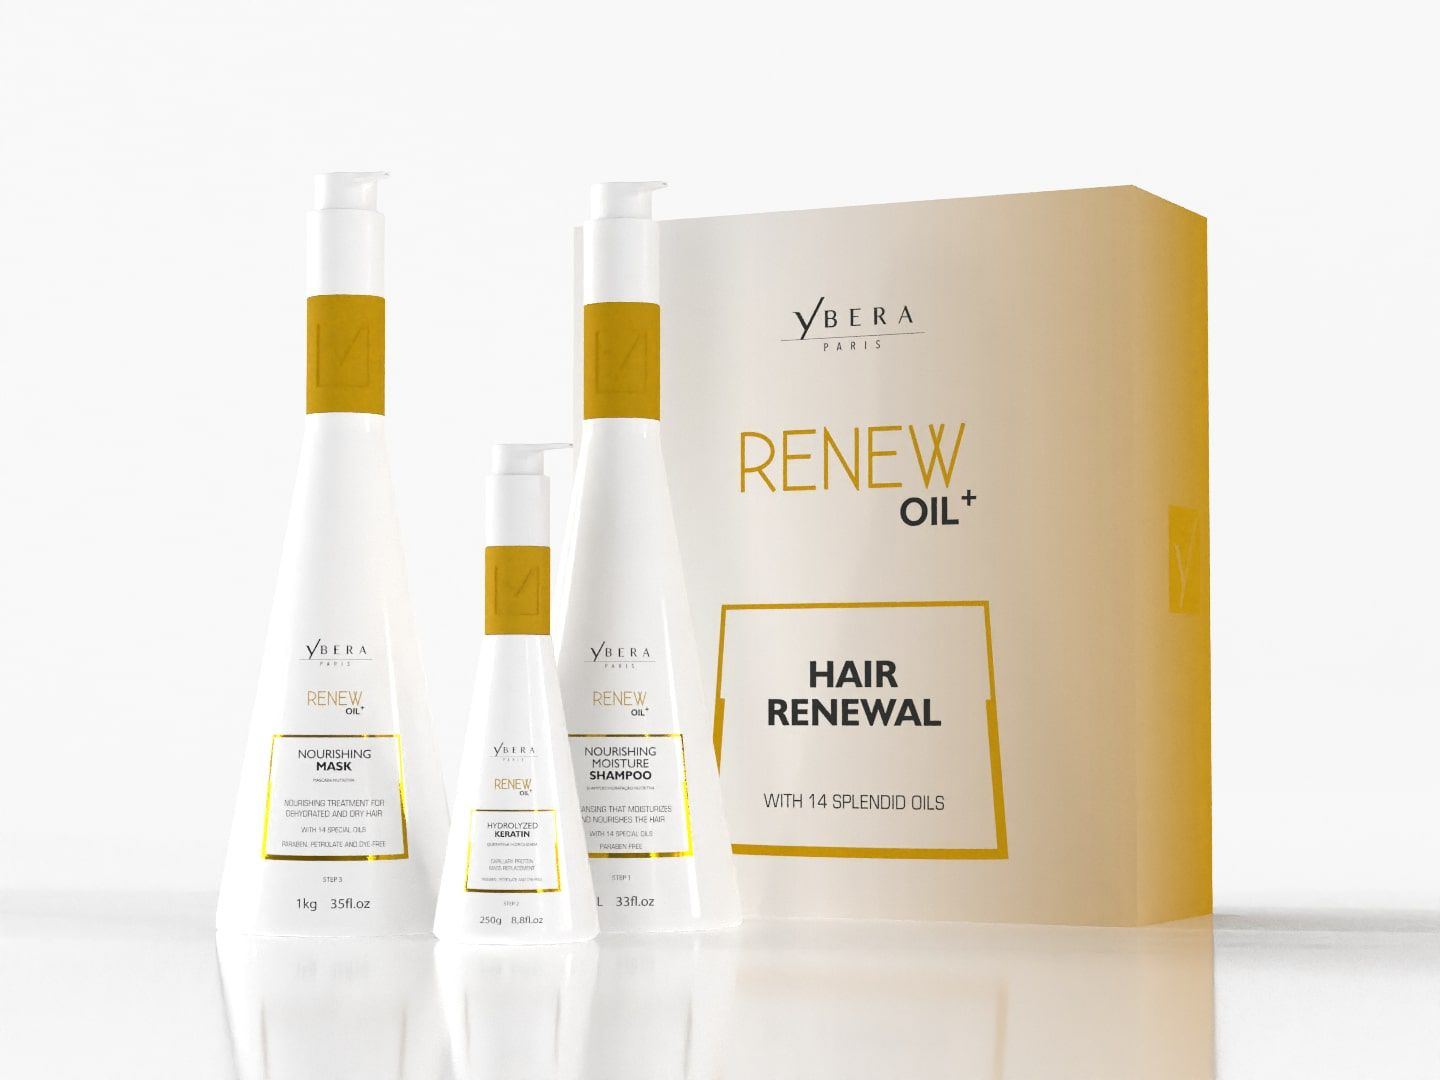 Kit Hidratação Nutritiva Renew Oil Ybera Paris